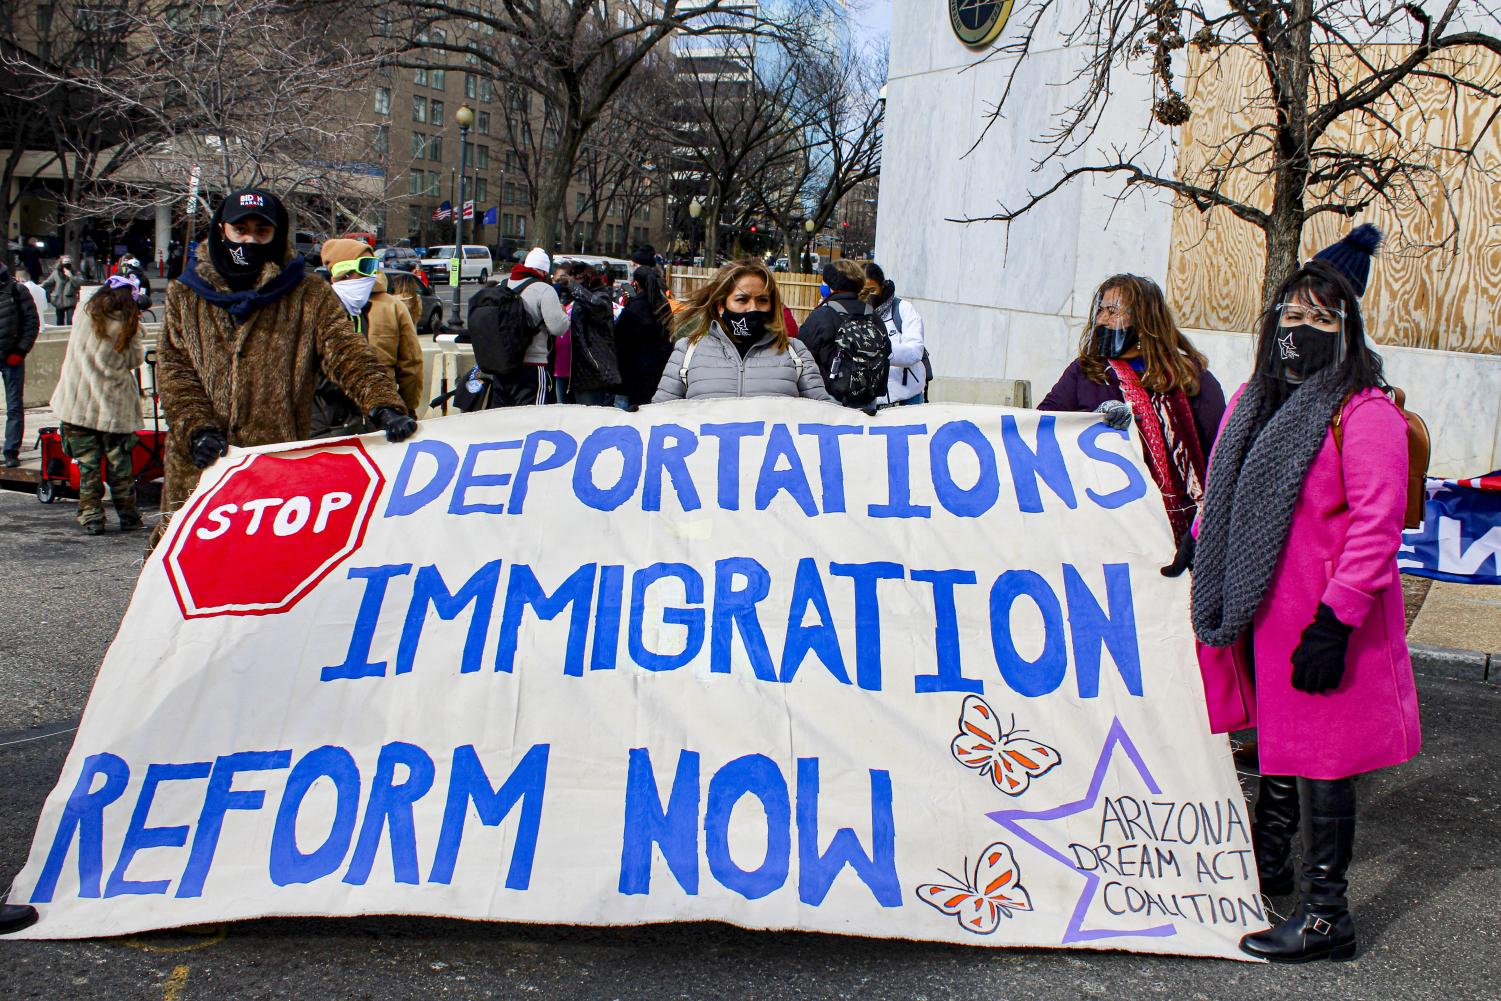 Protestors stand out of the Capitol calling for reform to Immigration at Joe Biden's inauguration on Jan. 20, in Washington D.C.